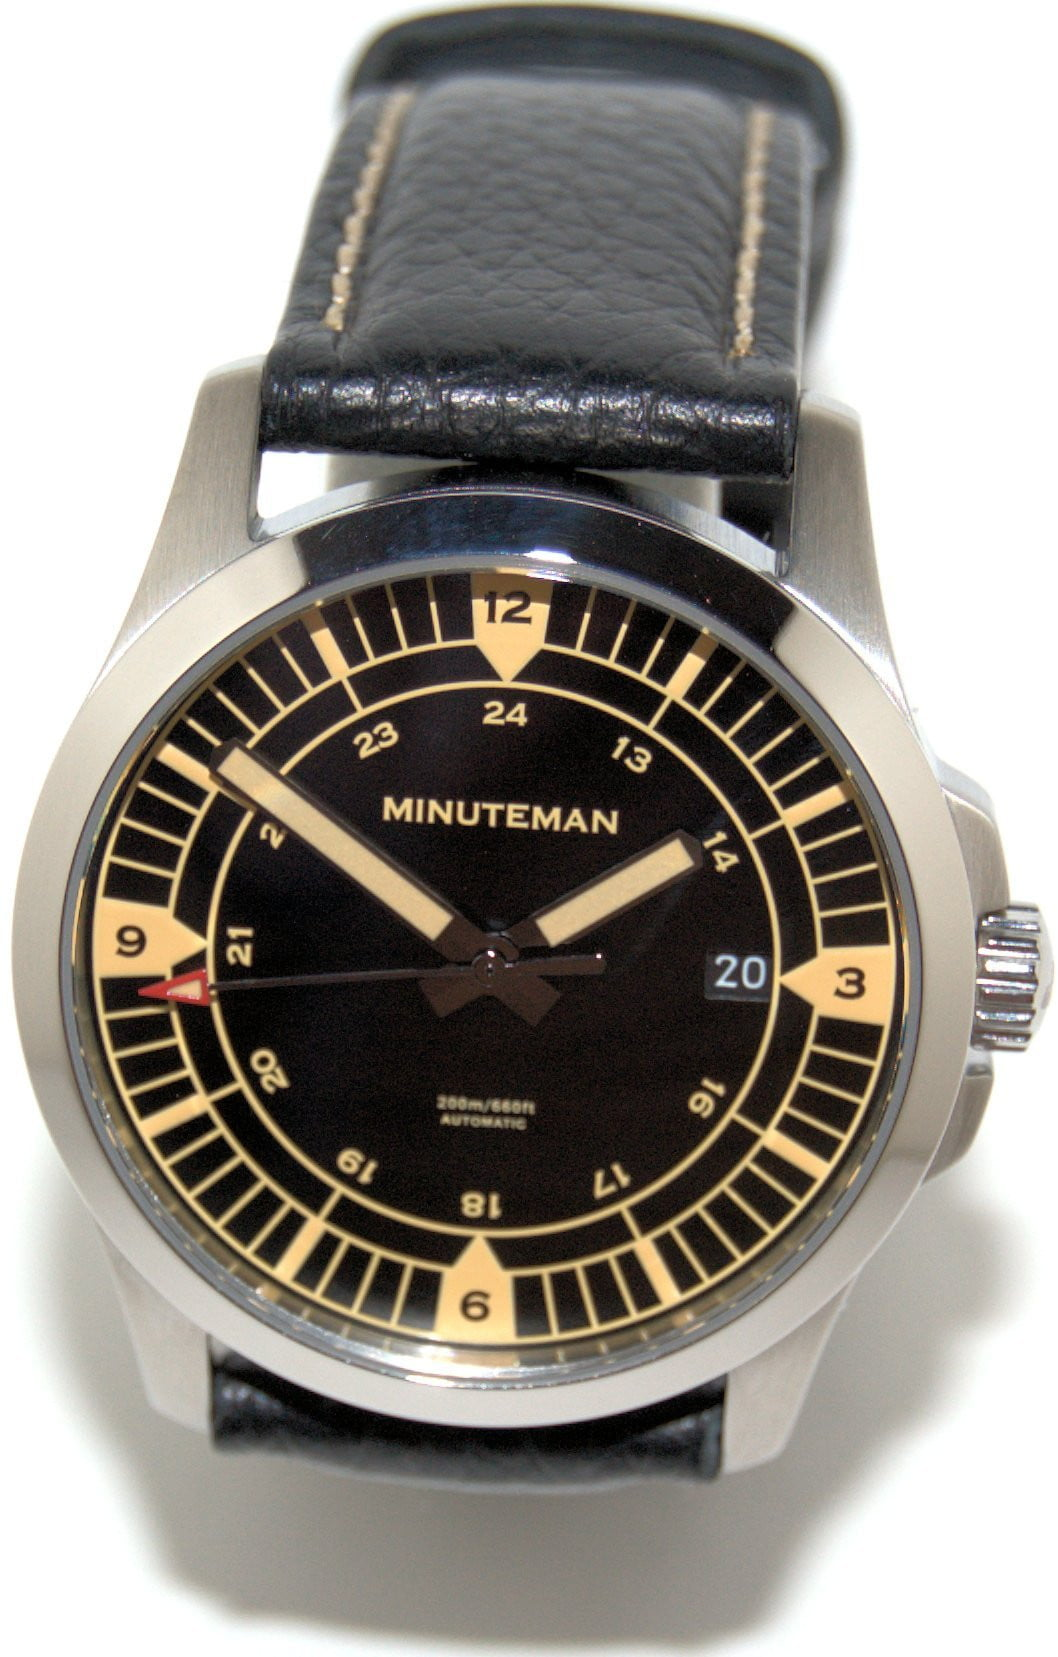 Minuteman  Darby brushed finish leather strap wristwatch,minutemanwatches,Minuteman,Wrist Watch